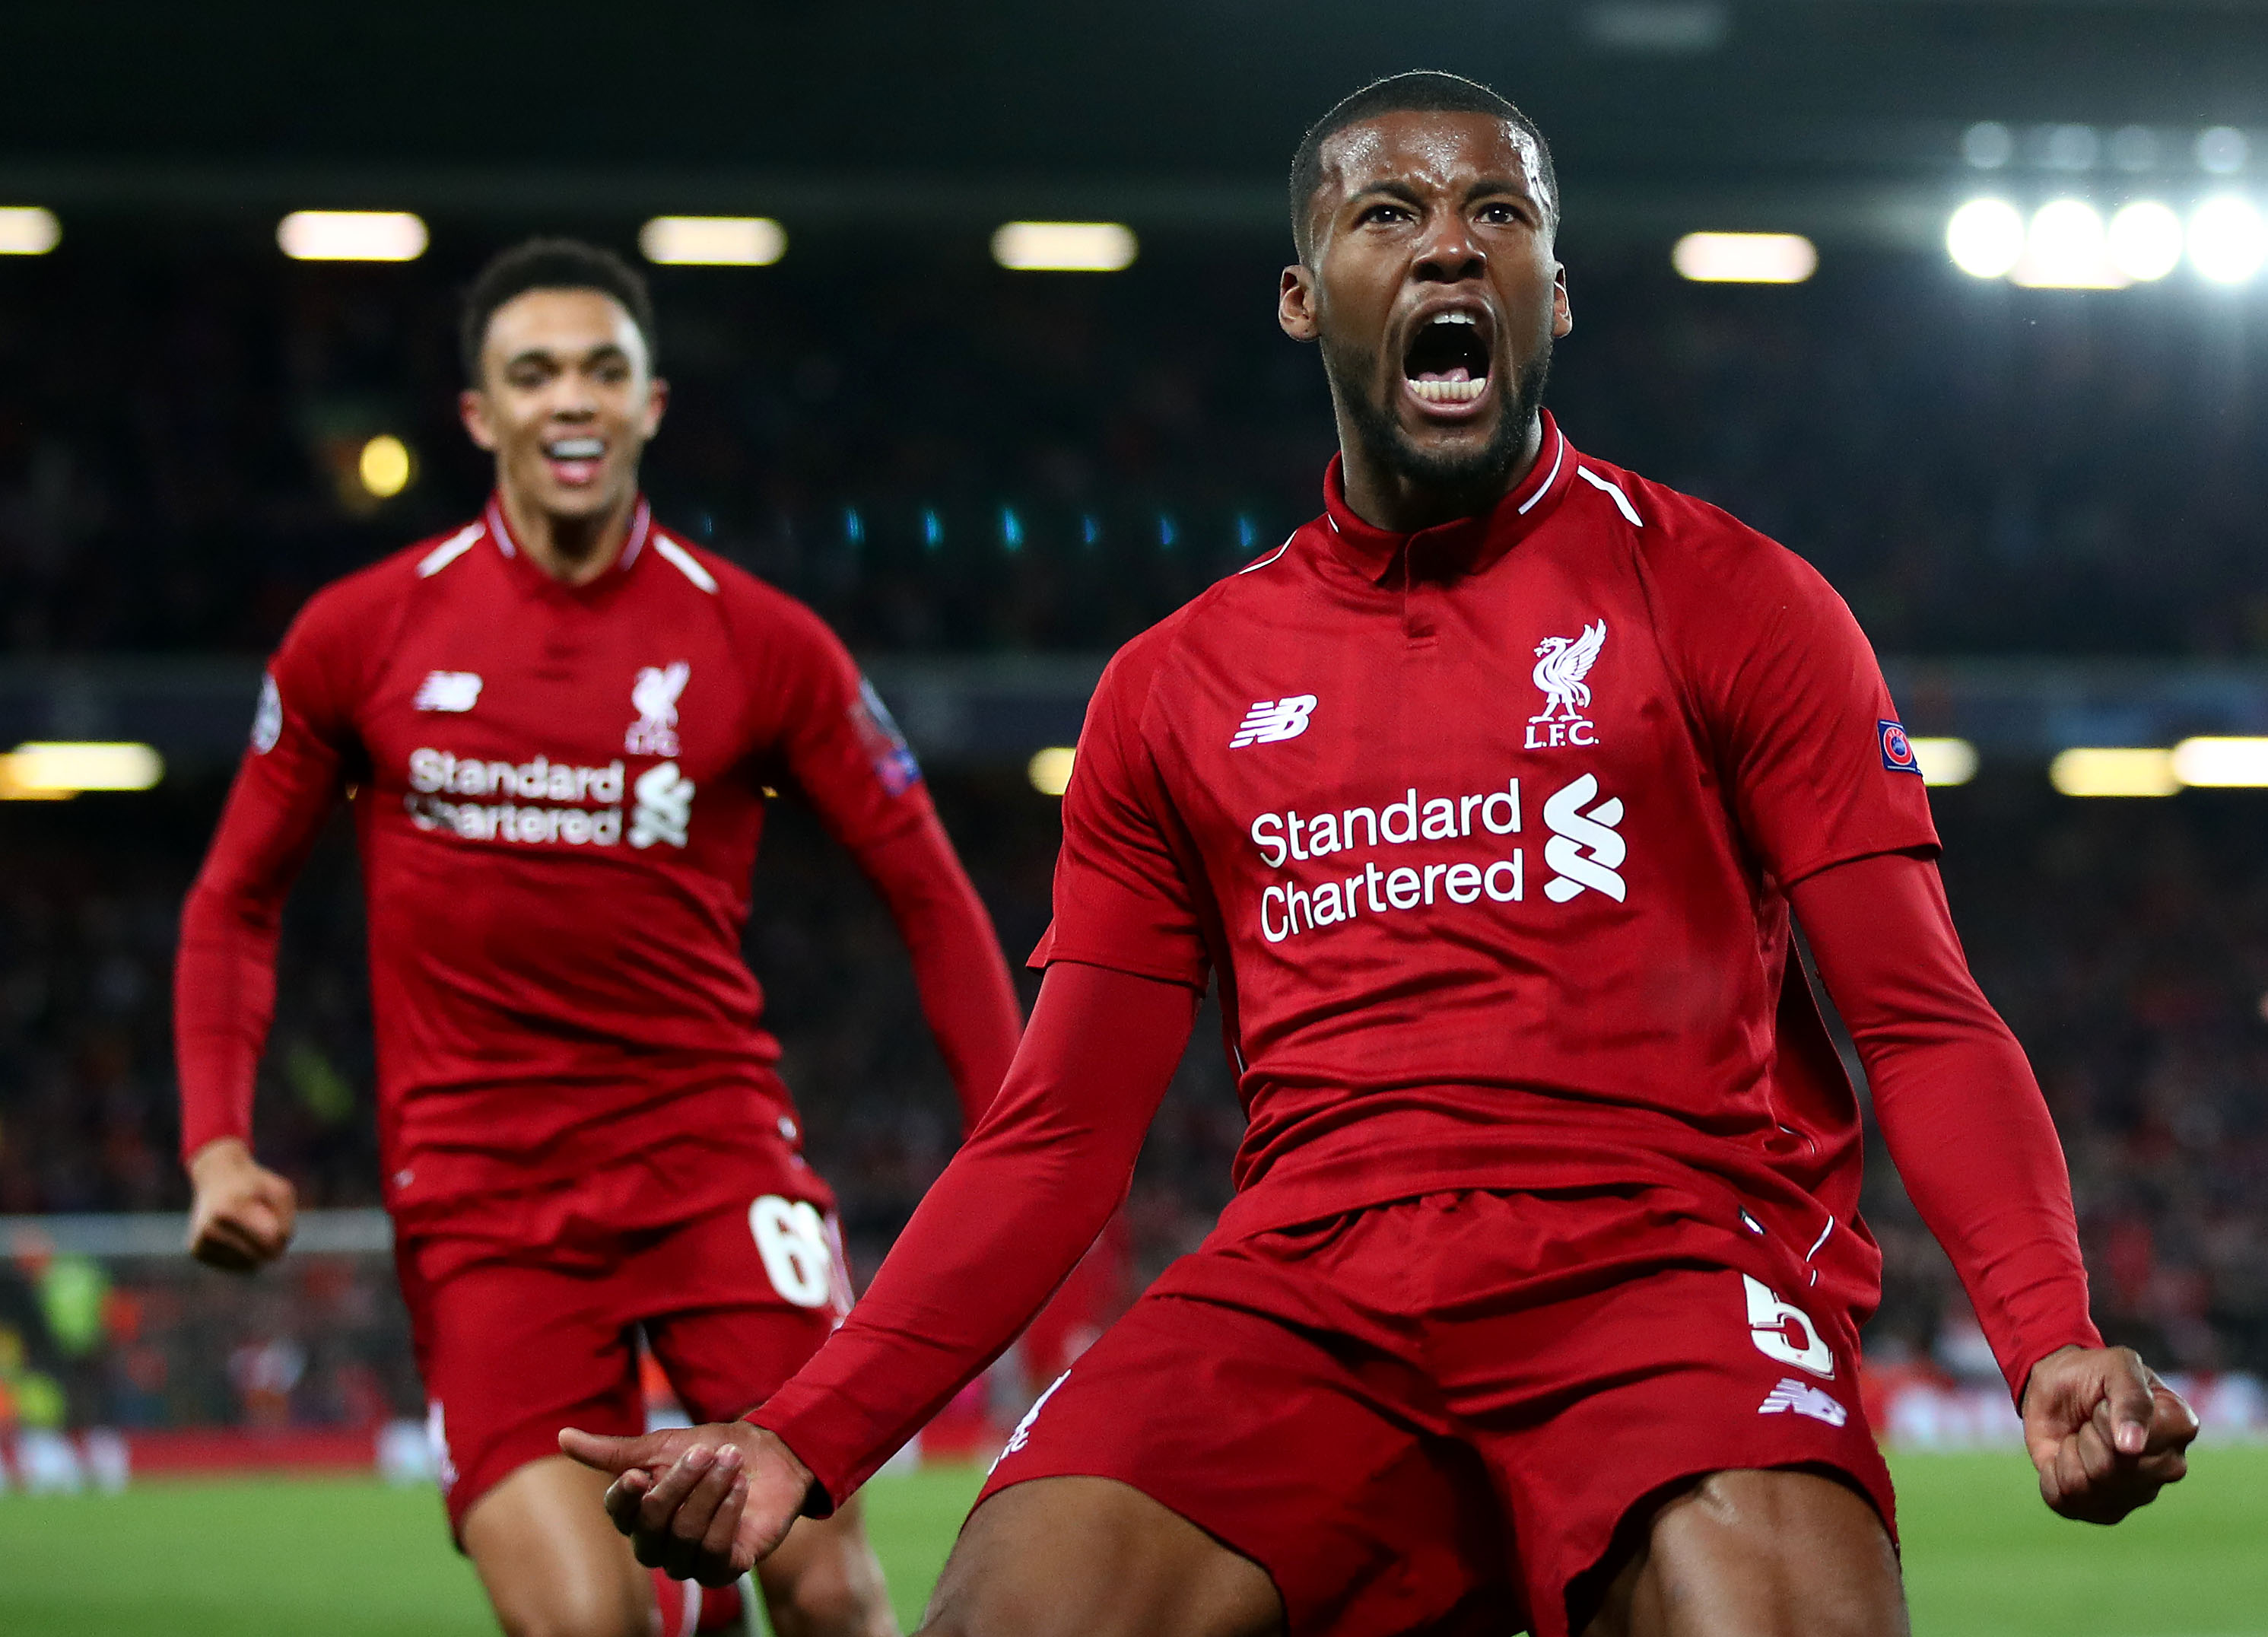 7 reasons why Liverpool's win over Barcelona was so satisfying